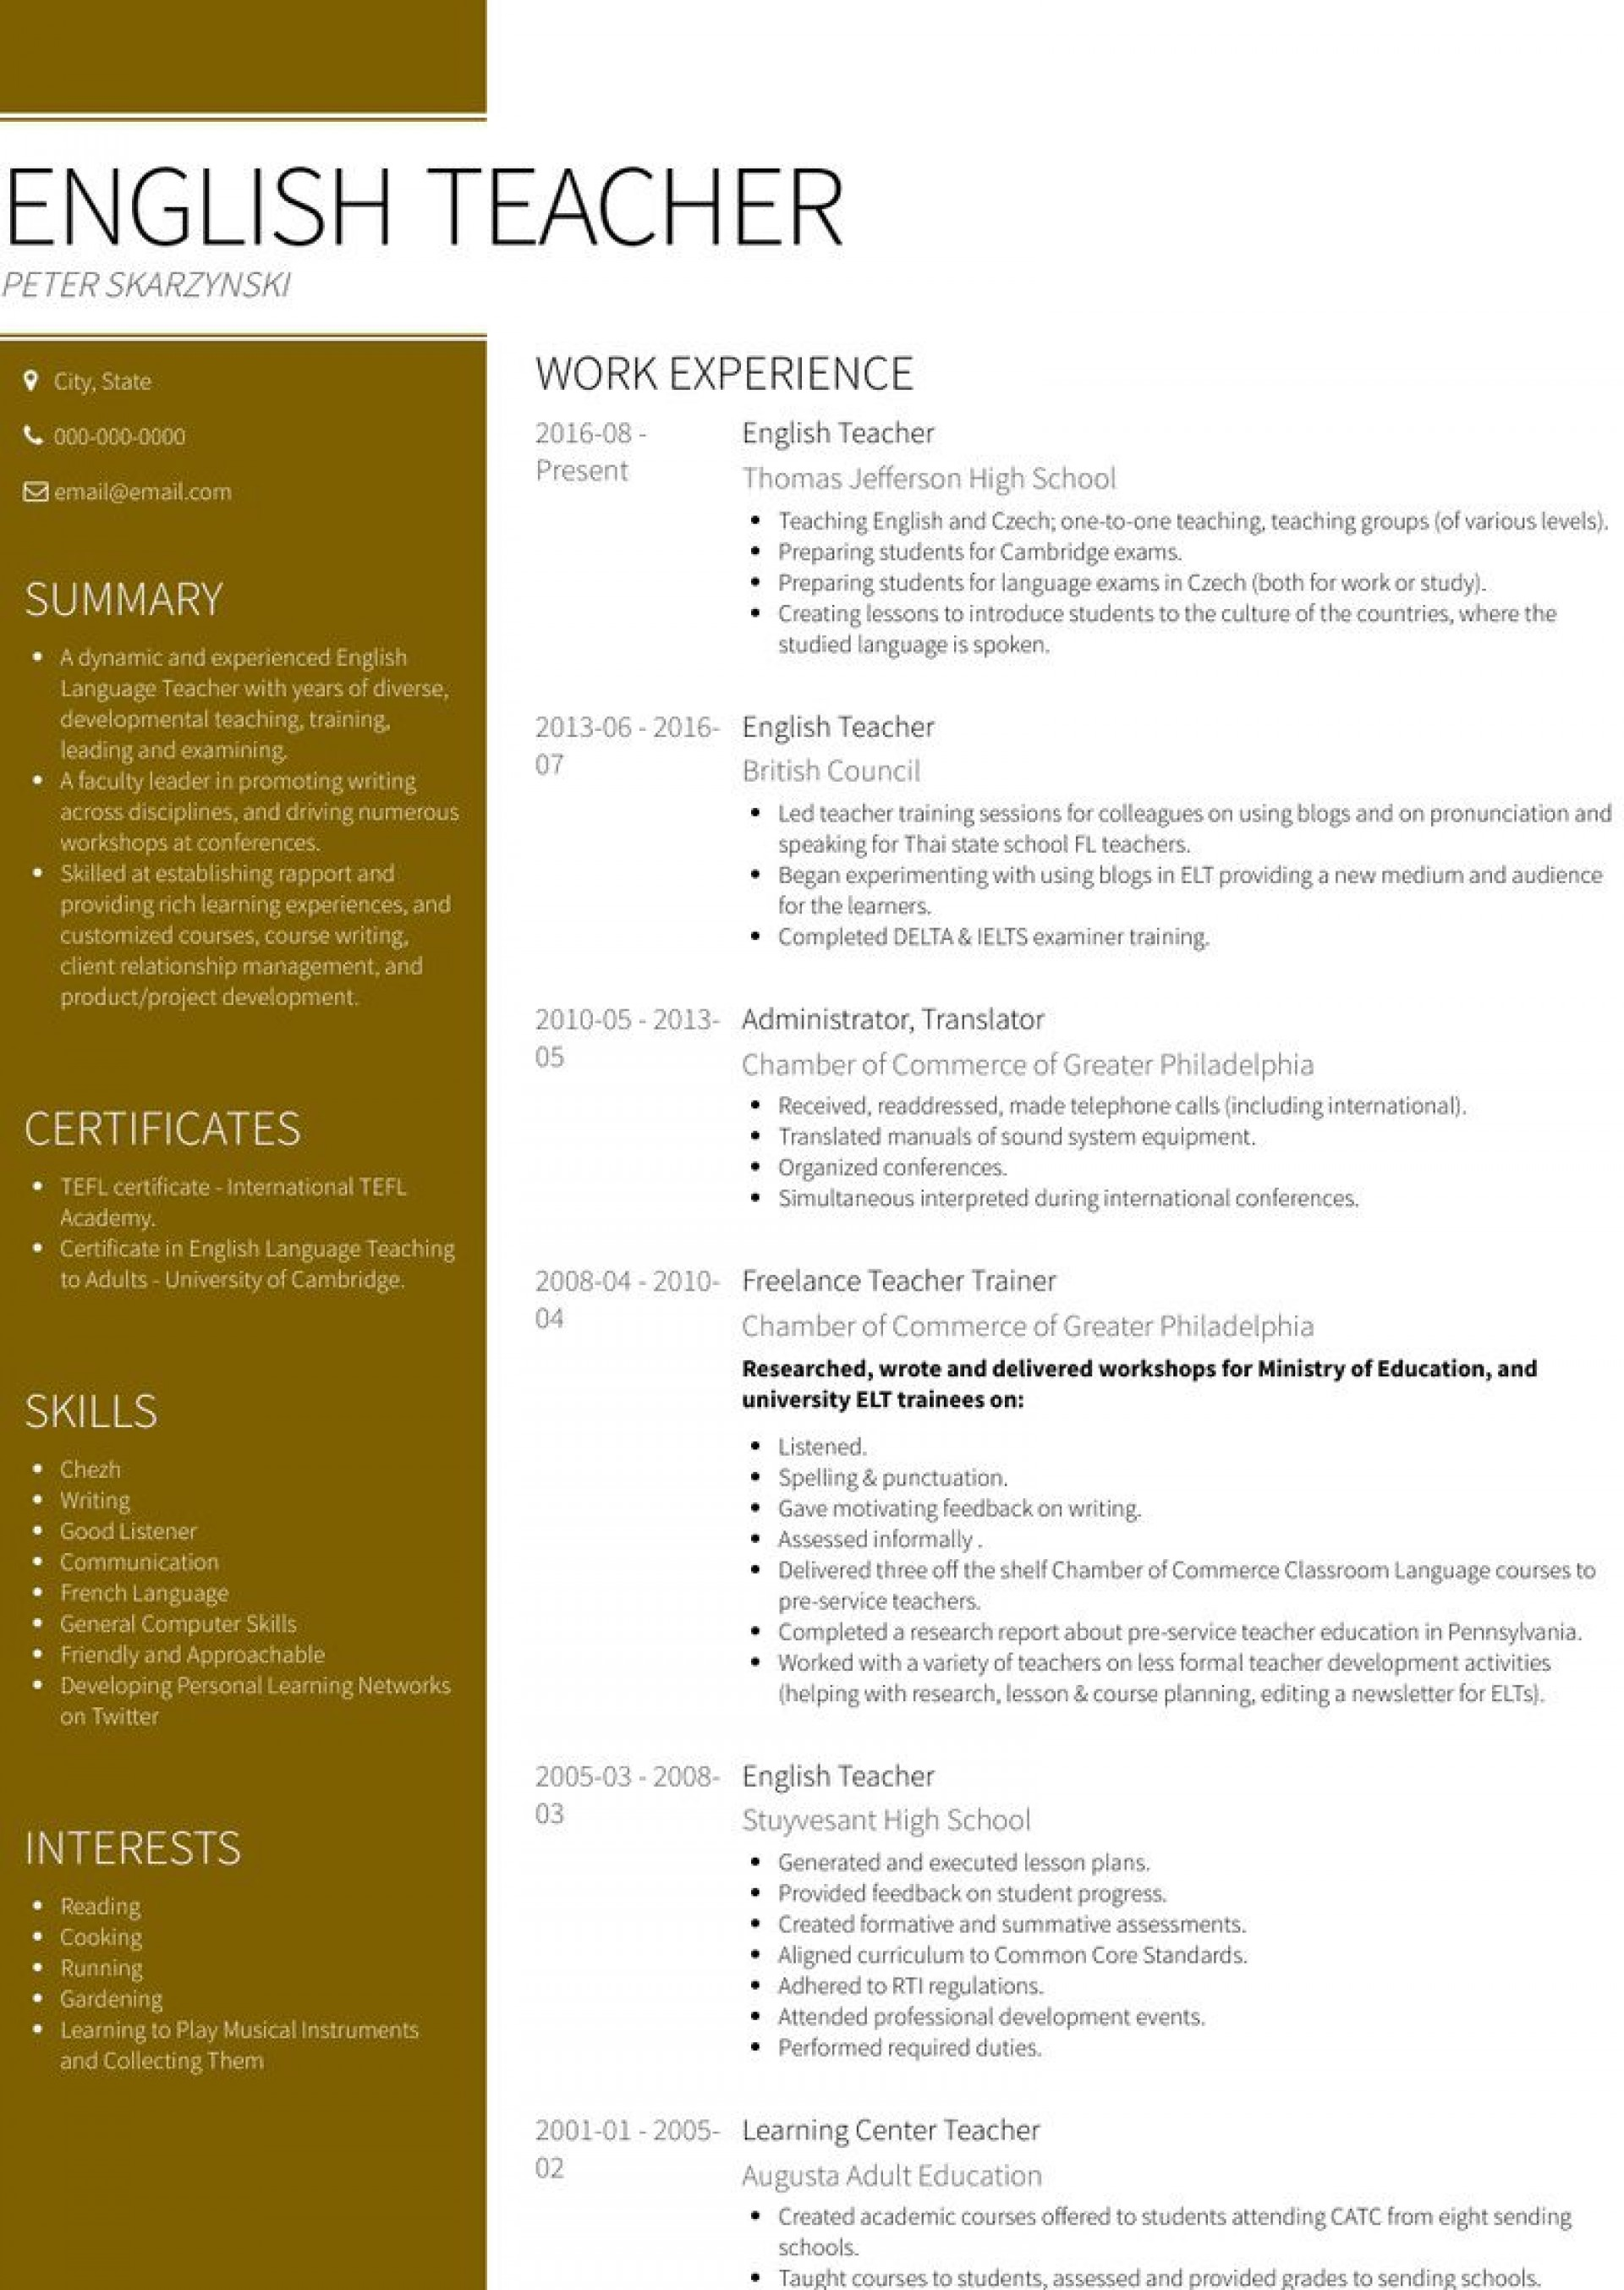 007 Archaicawful Resume Template For Teacher High Resolution  Australia Microsoft Word Sample1920